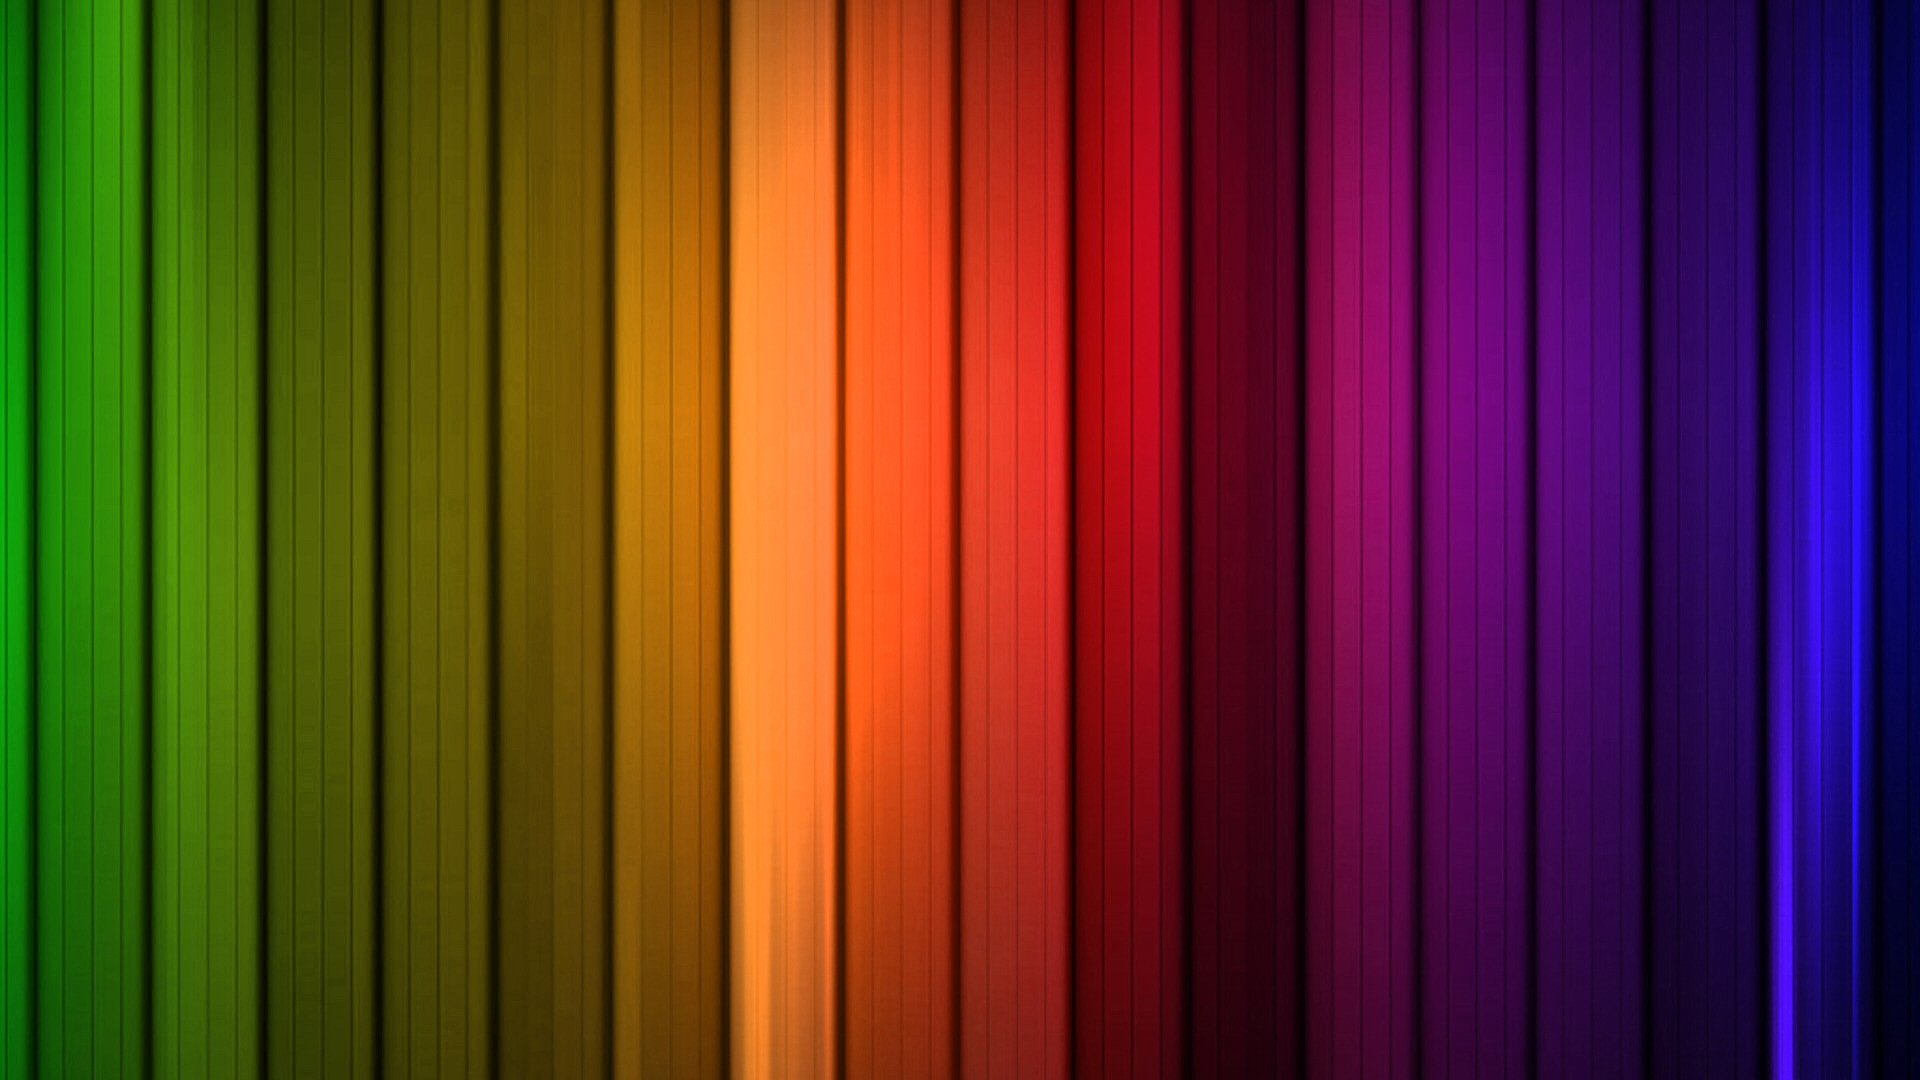 Rainbow Hd Wallpaper Background Image 1920x1080 Id 695351